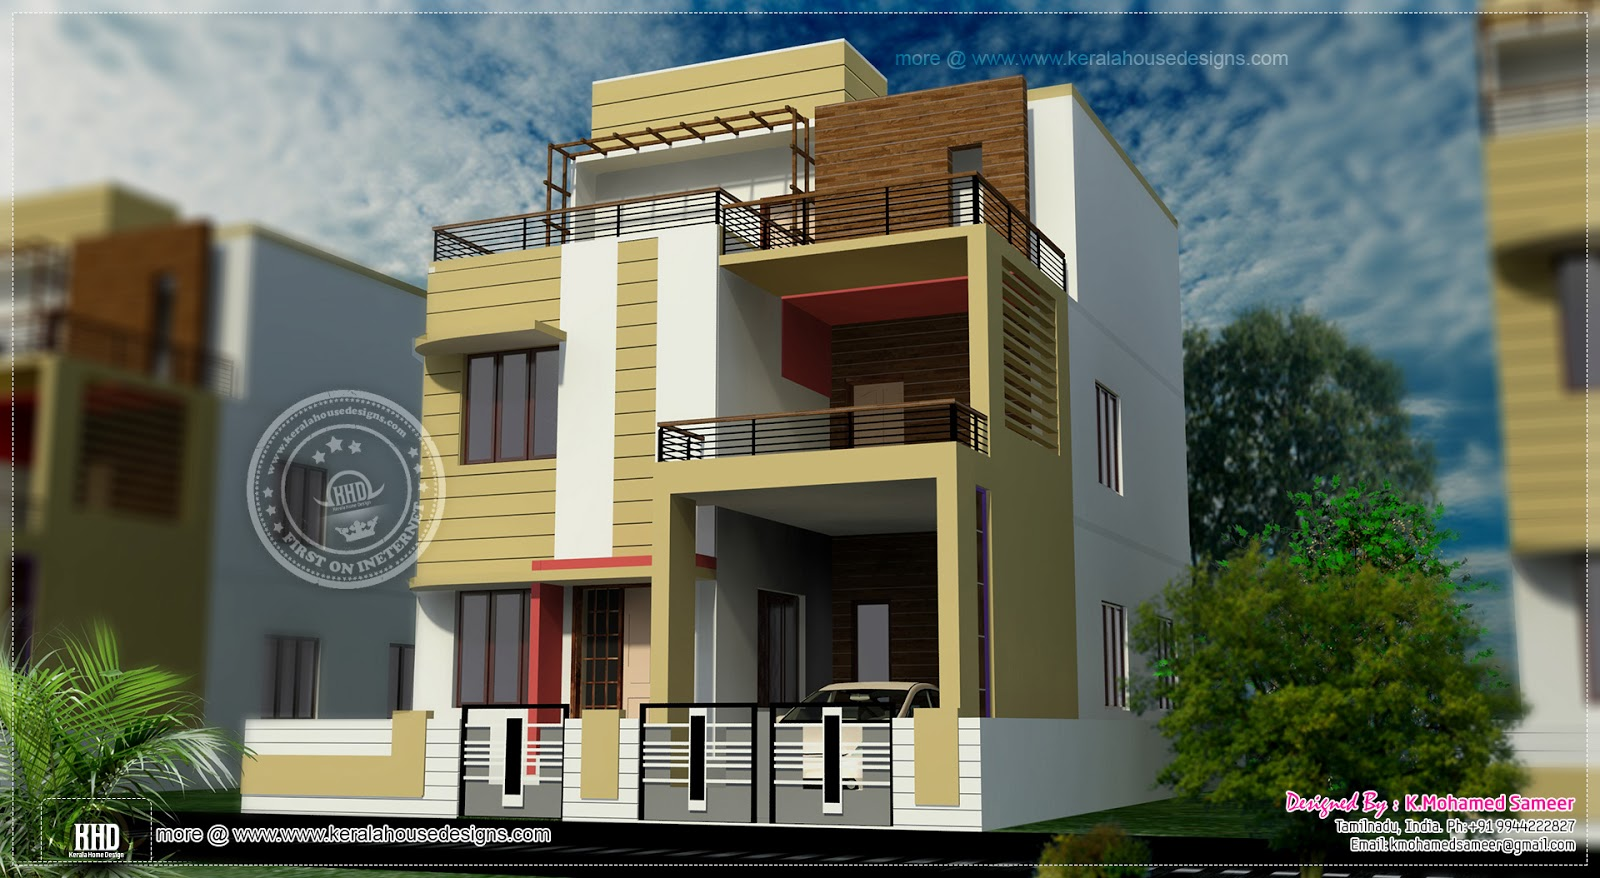 3 story house plan design in 2626 kerala home On 3 story home plans